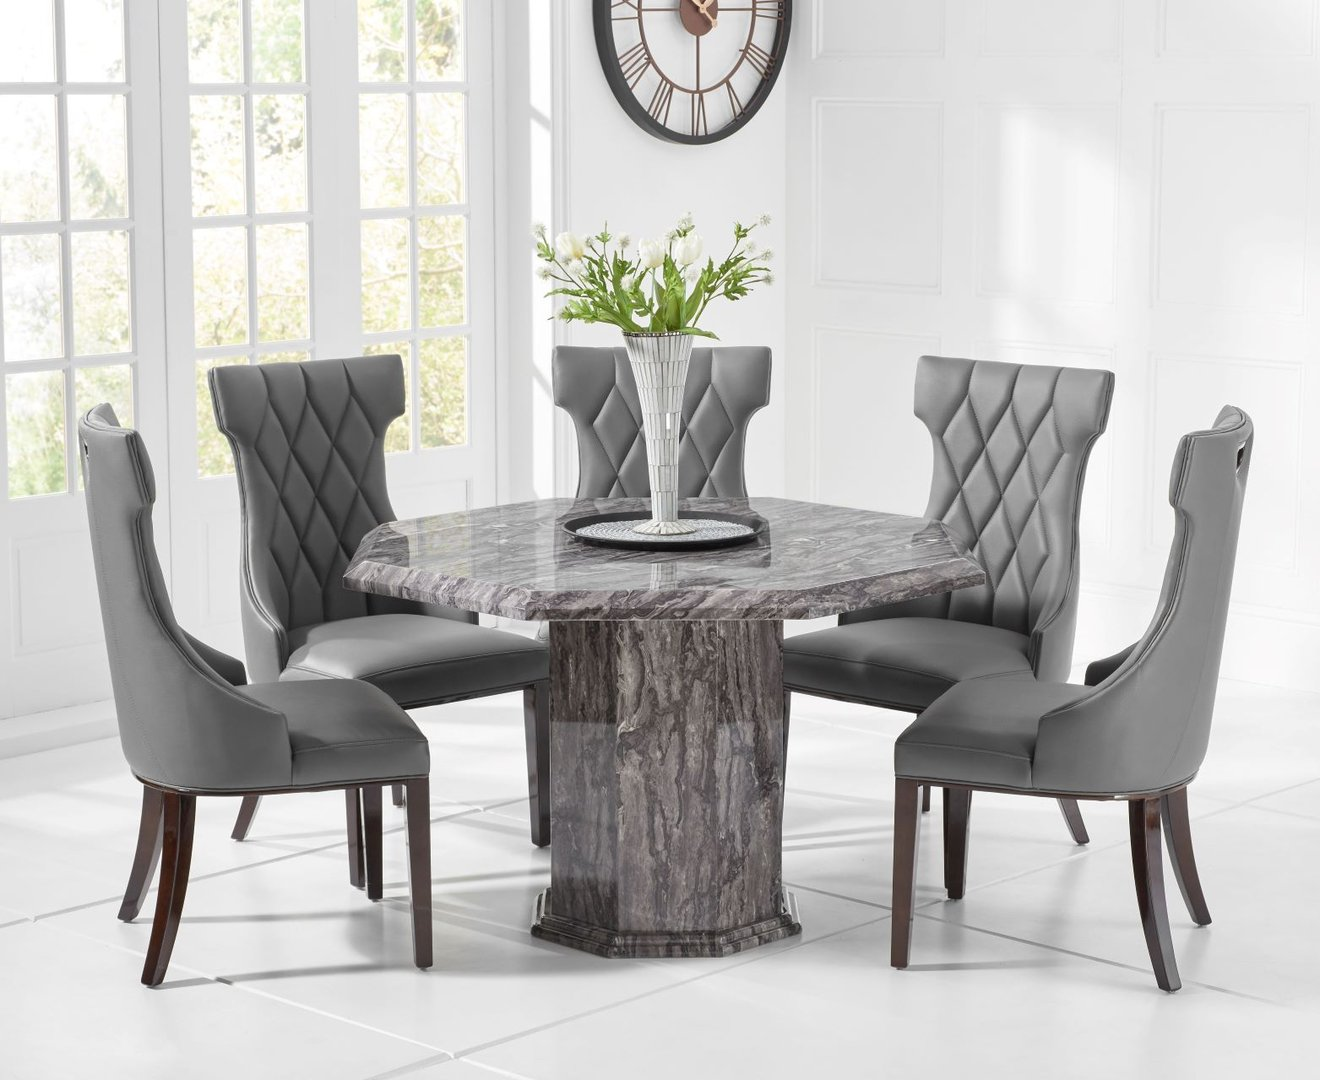 8 Seater Dark Wood Dining Table And Chairs